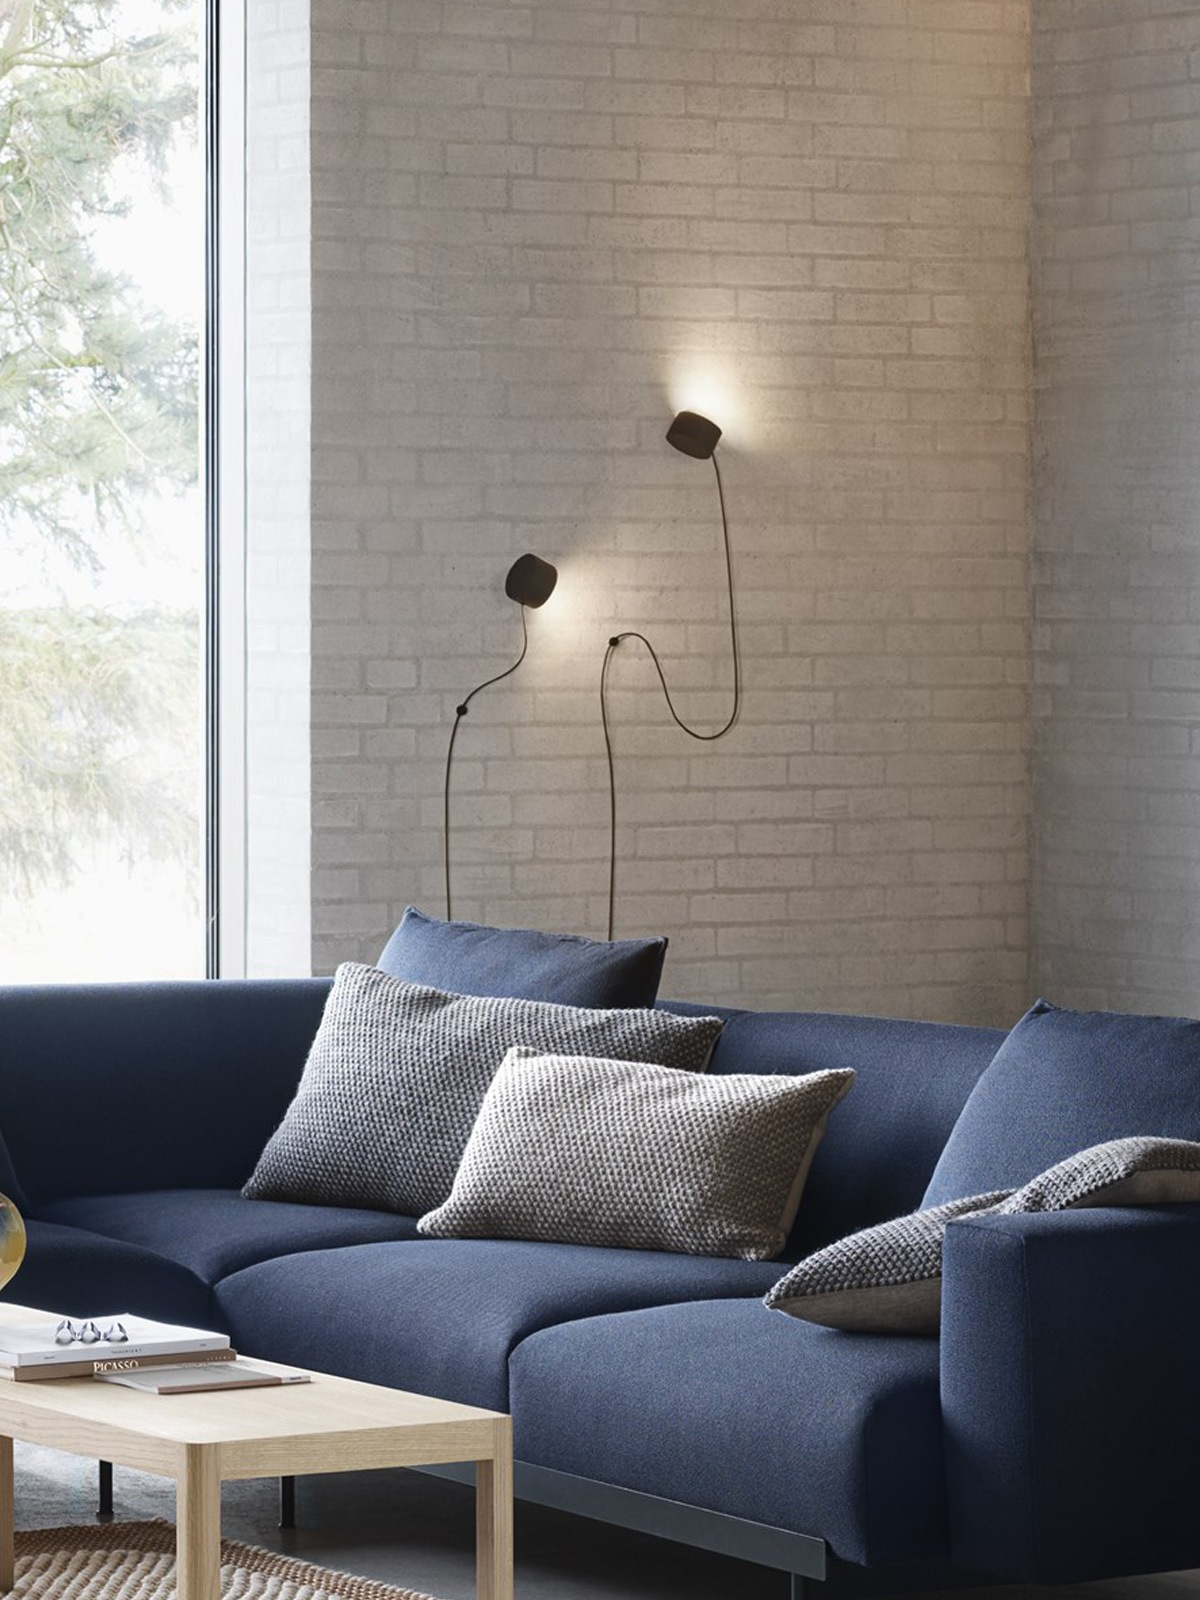 Post Wall Lamp muuto DesignOrt Berlin Lampen